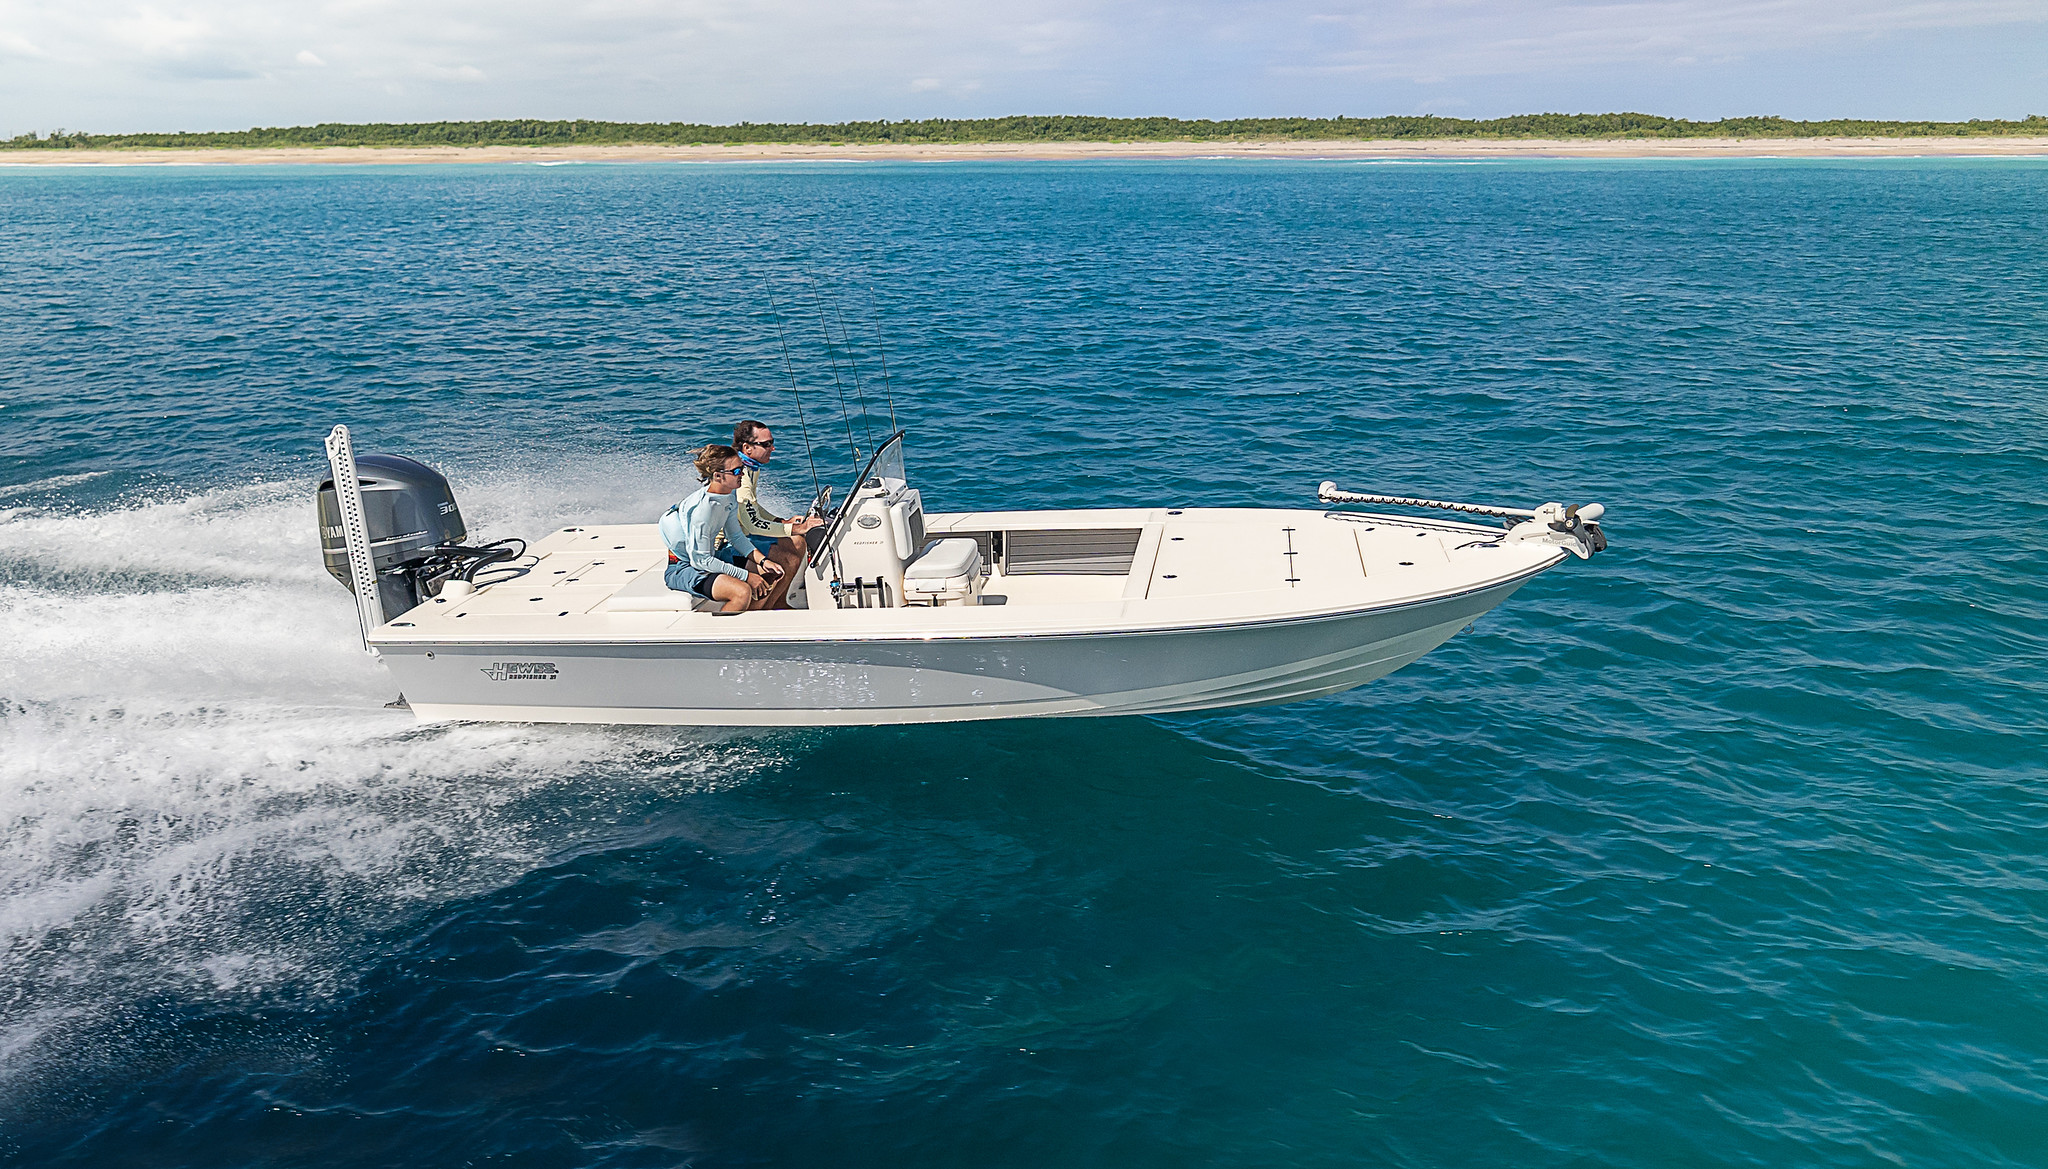 Hewes Redfisher 21 Flats Boat